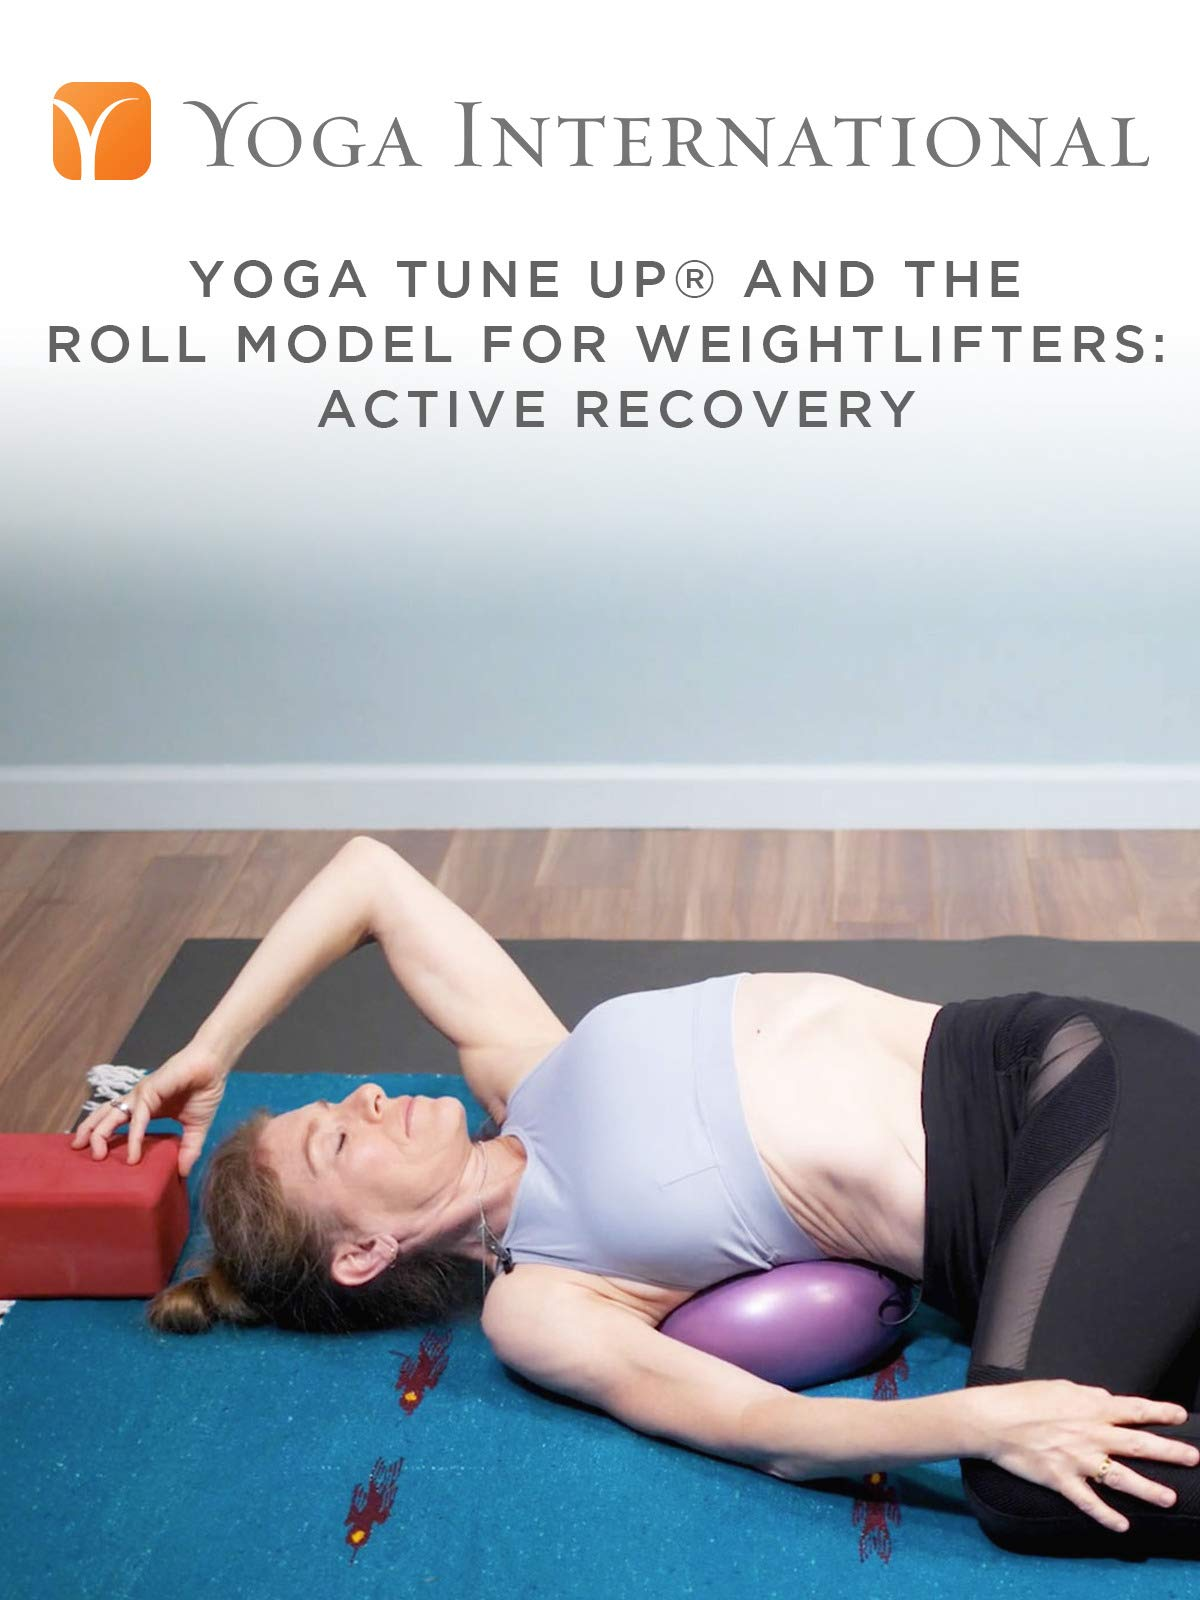 Amazon.com: Watch Yoga Tune Up and the Roll Model for ...